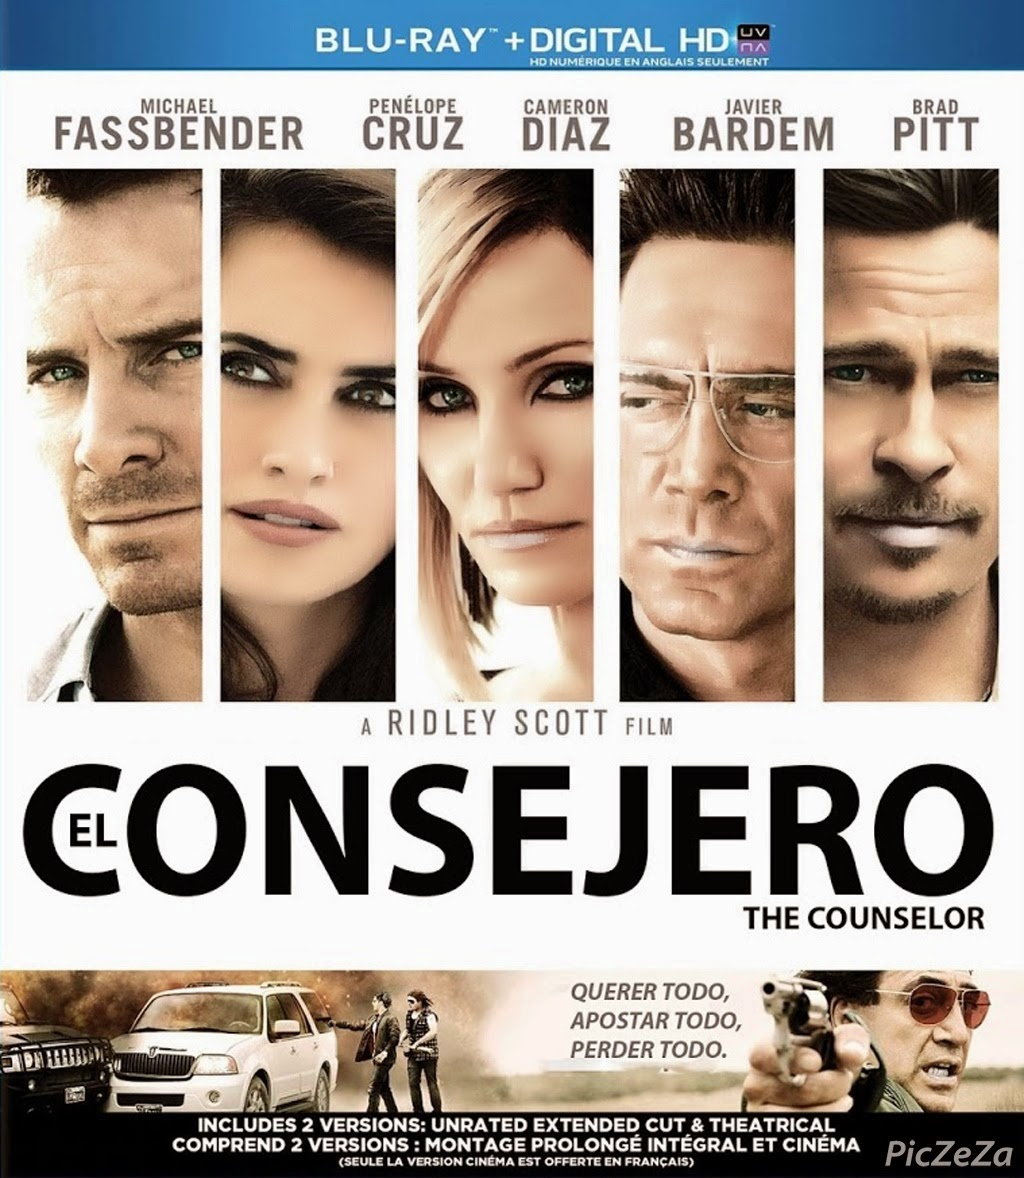 The Counselor 2013 Theatrical Cut ยุติธรรม อำมหิต